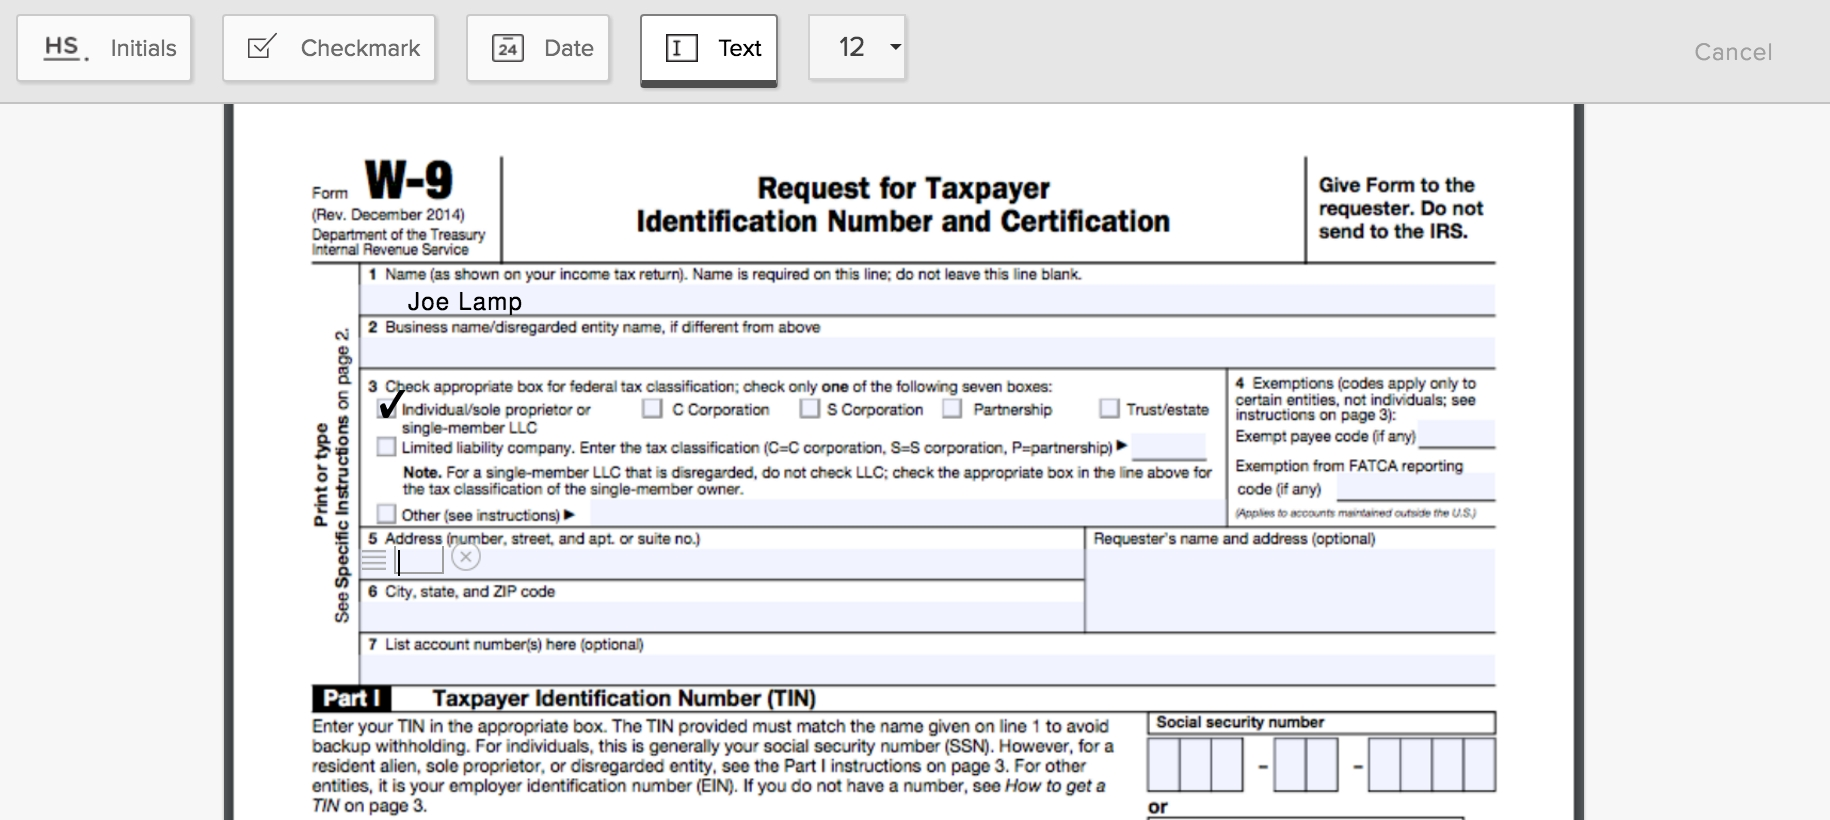 How To Fill Out A W-9 Form Online - Hellosign Blog-Print Blank I 9 Form